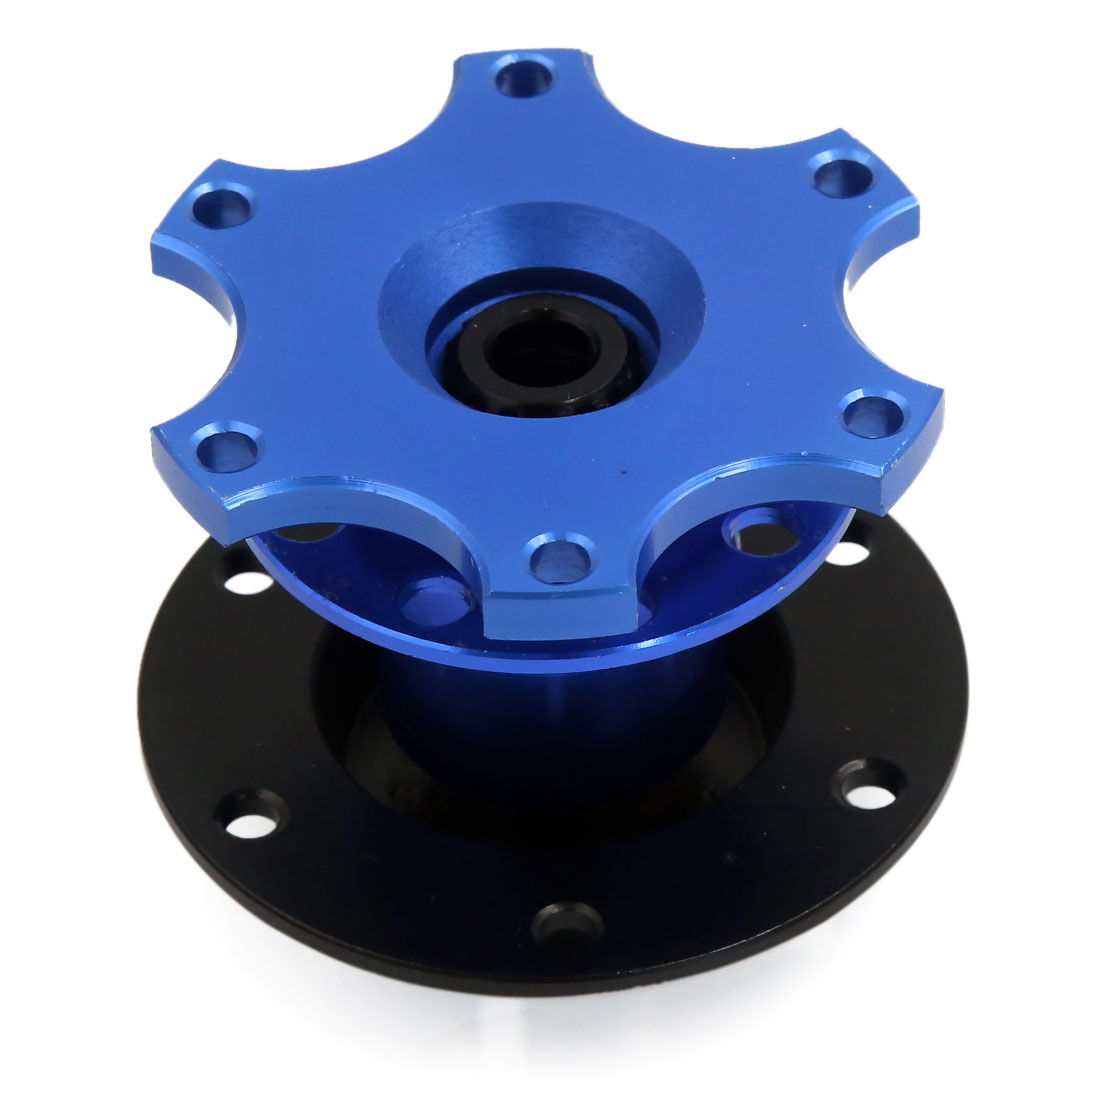 Metal Rolling Ball Type Steering Wheel Hub Adapter Kit for Auto Car